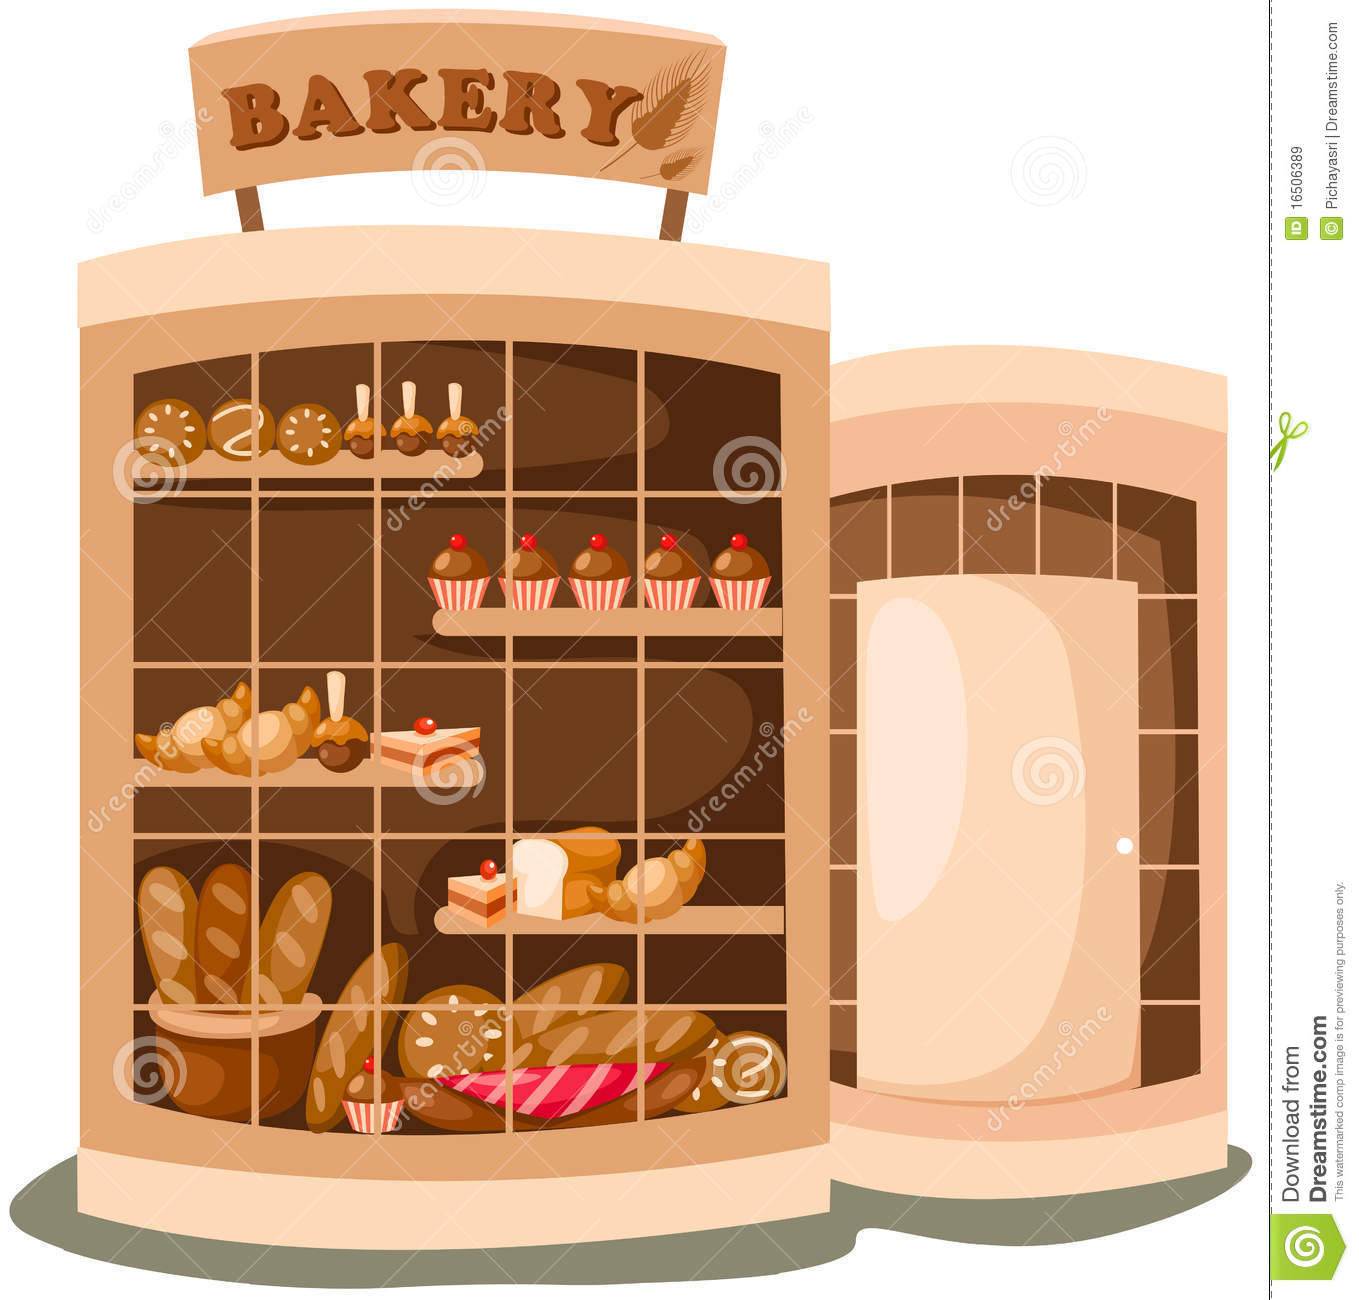 Bakery clipart store. Building